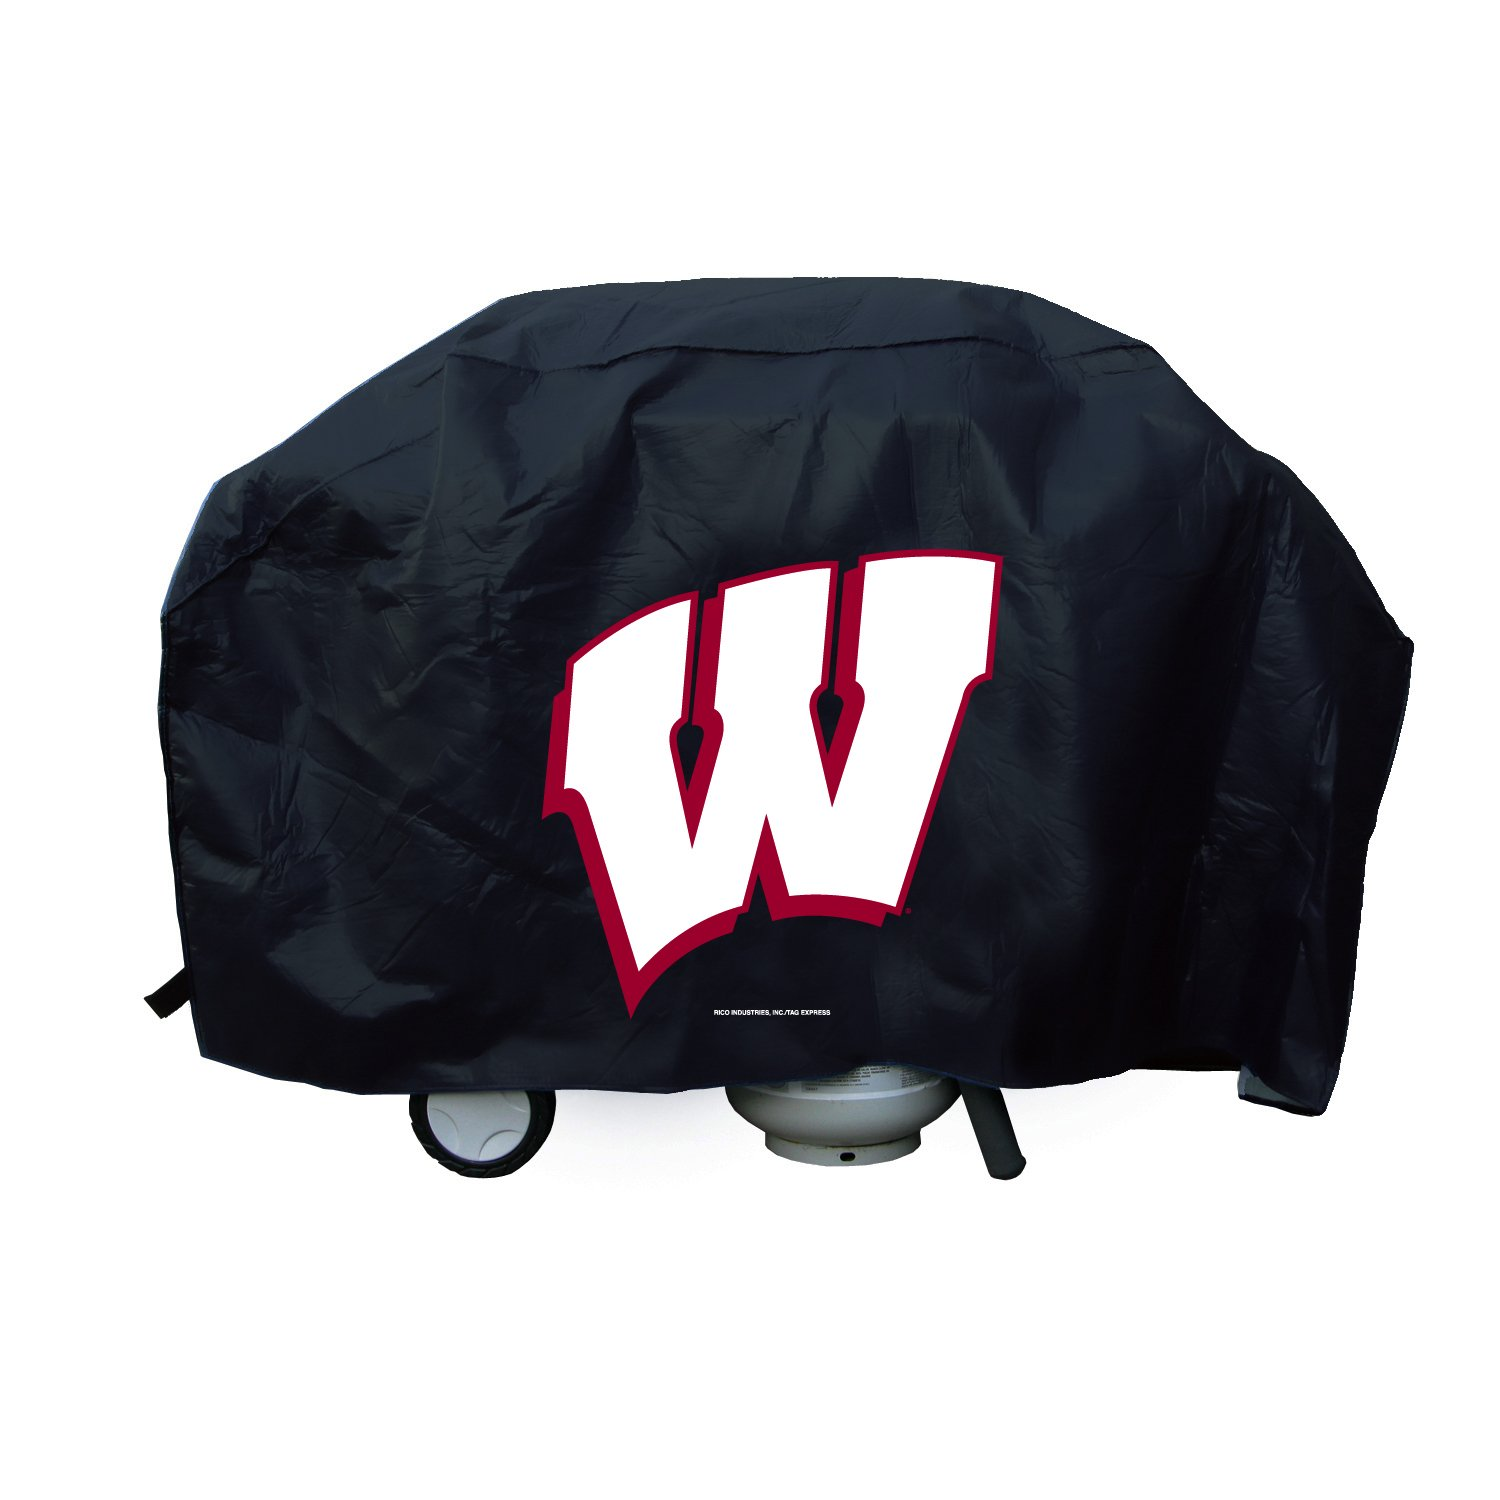 NCAA Wisconsin Badgers Grill Cover günstig